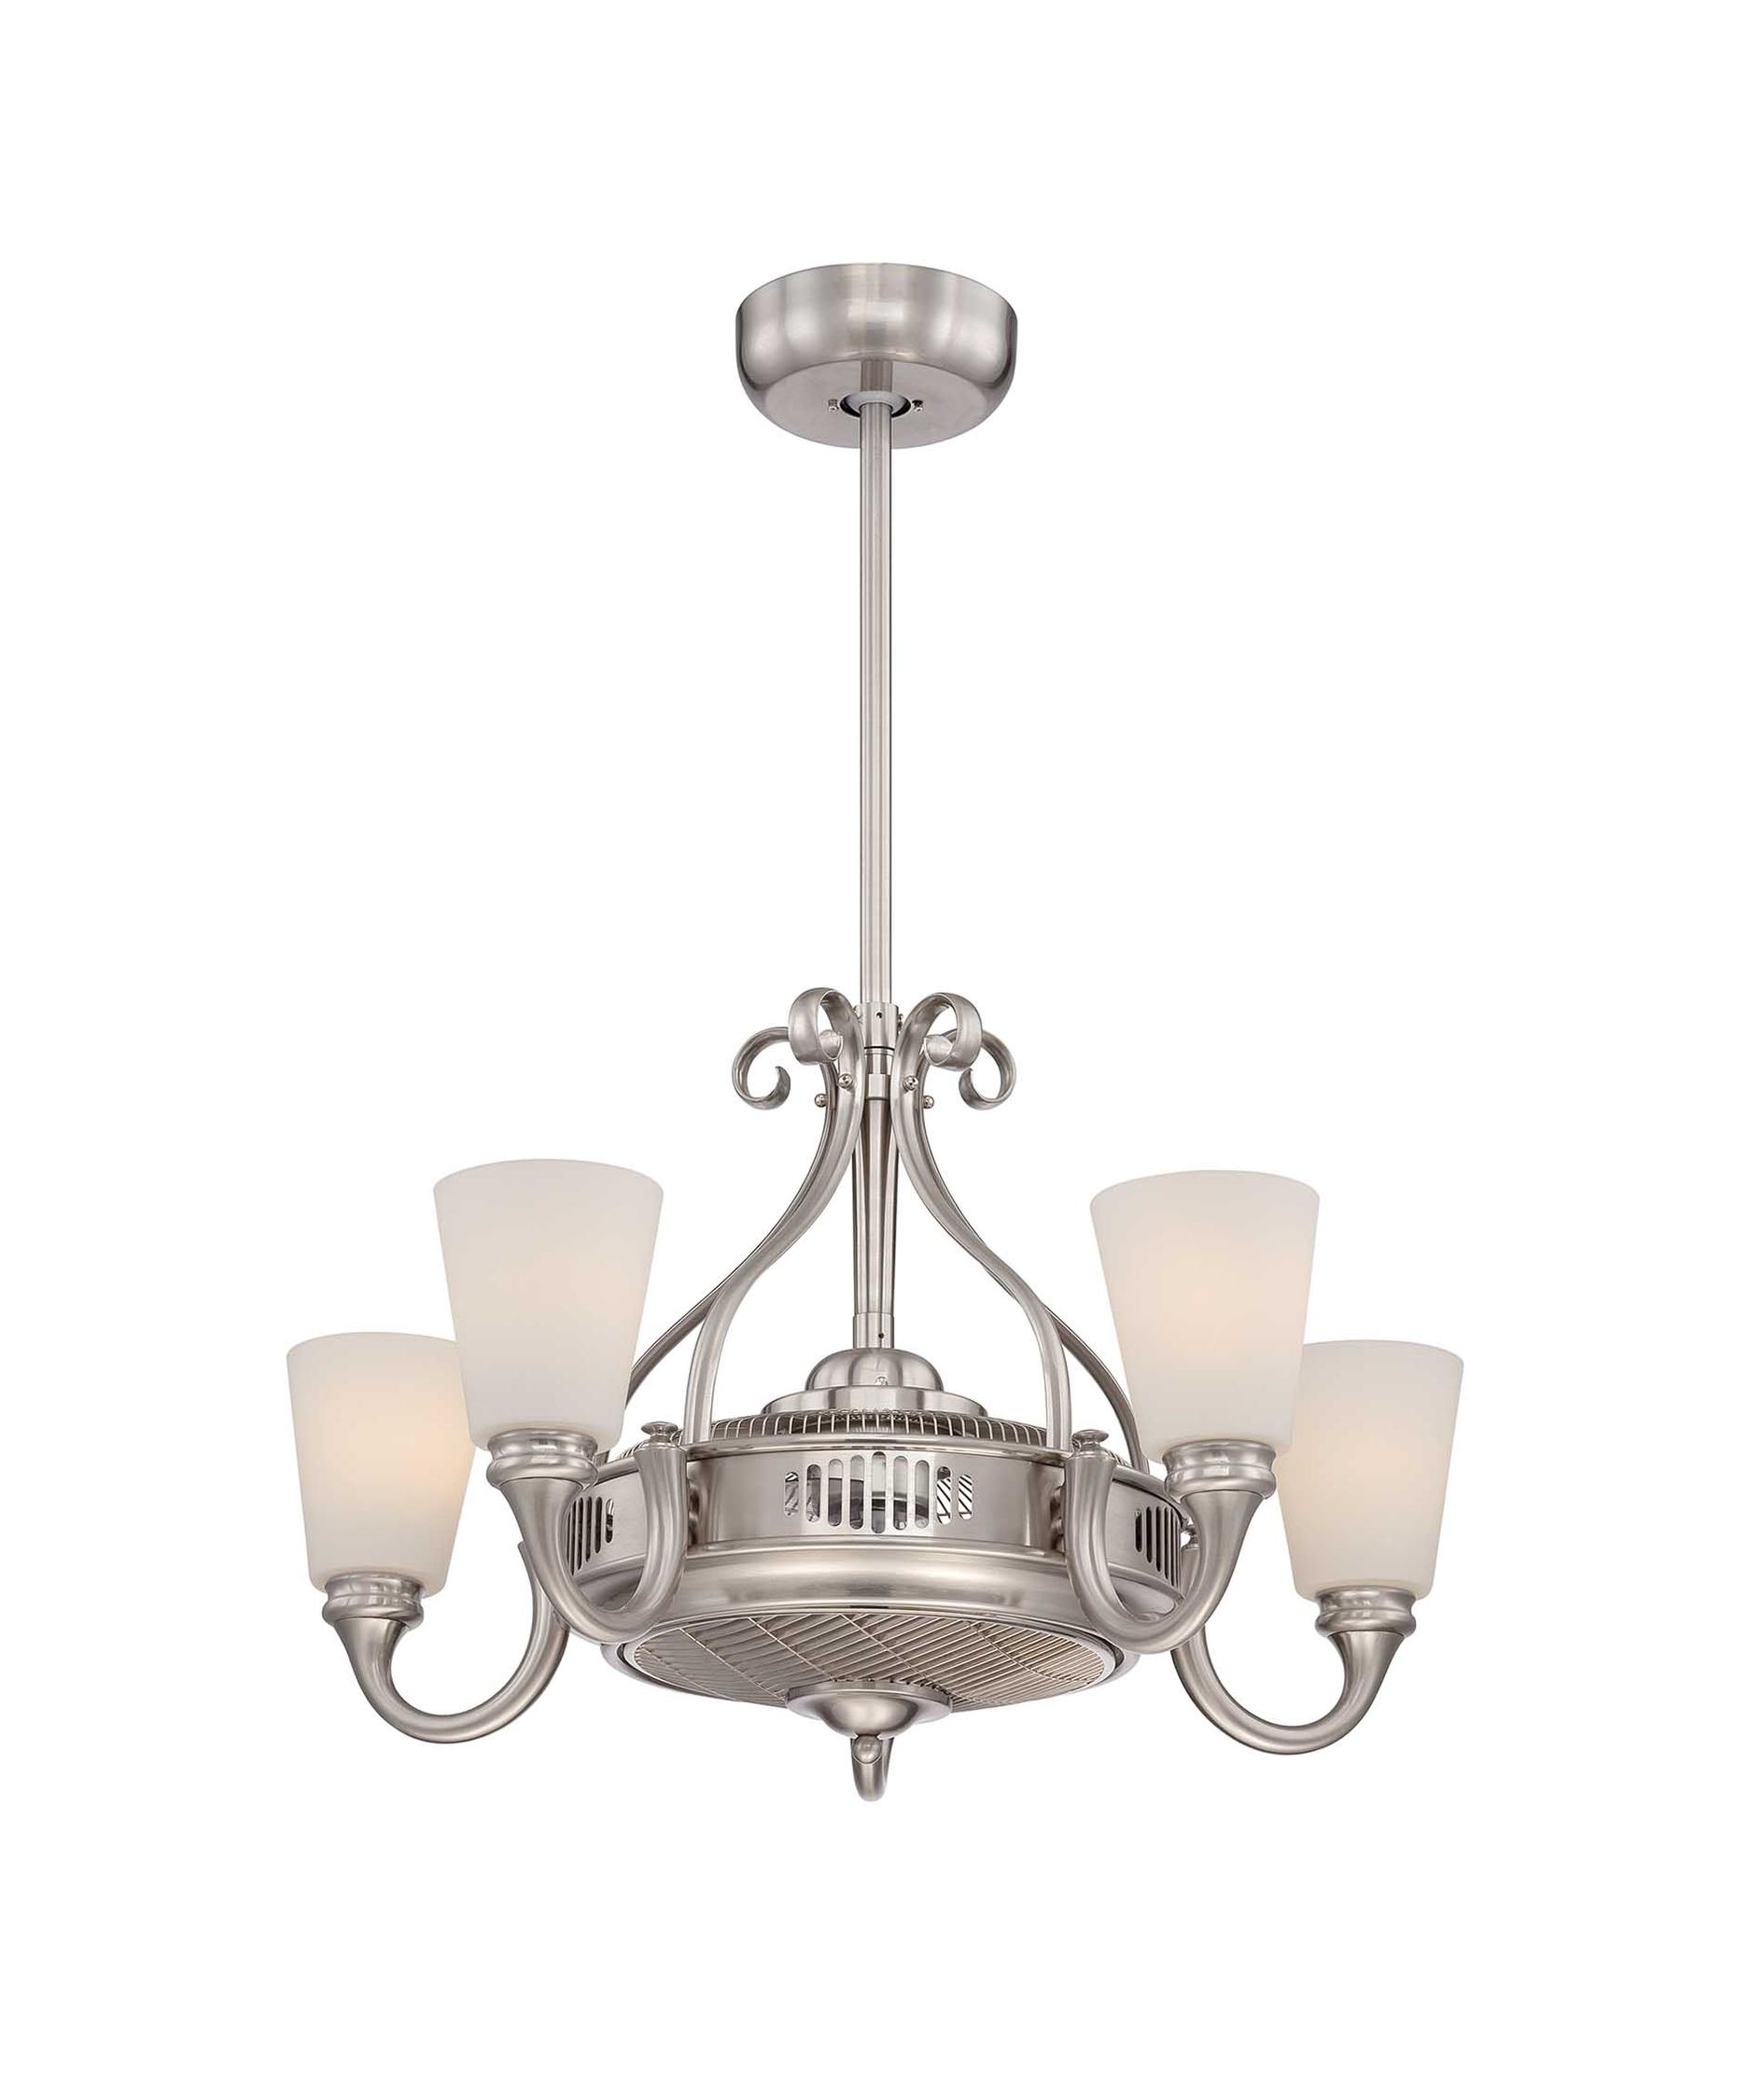 chandelier ceiling fans at lighting, Home decor